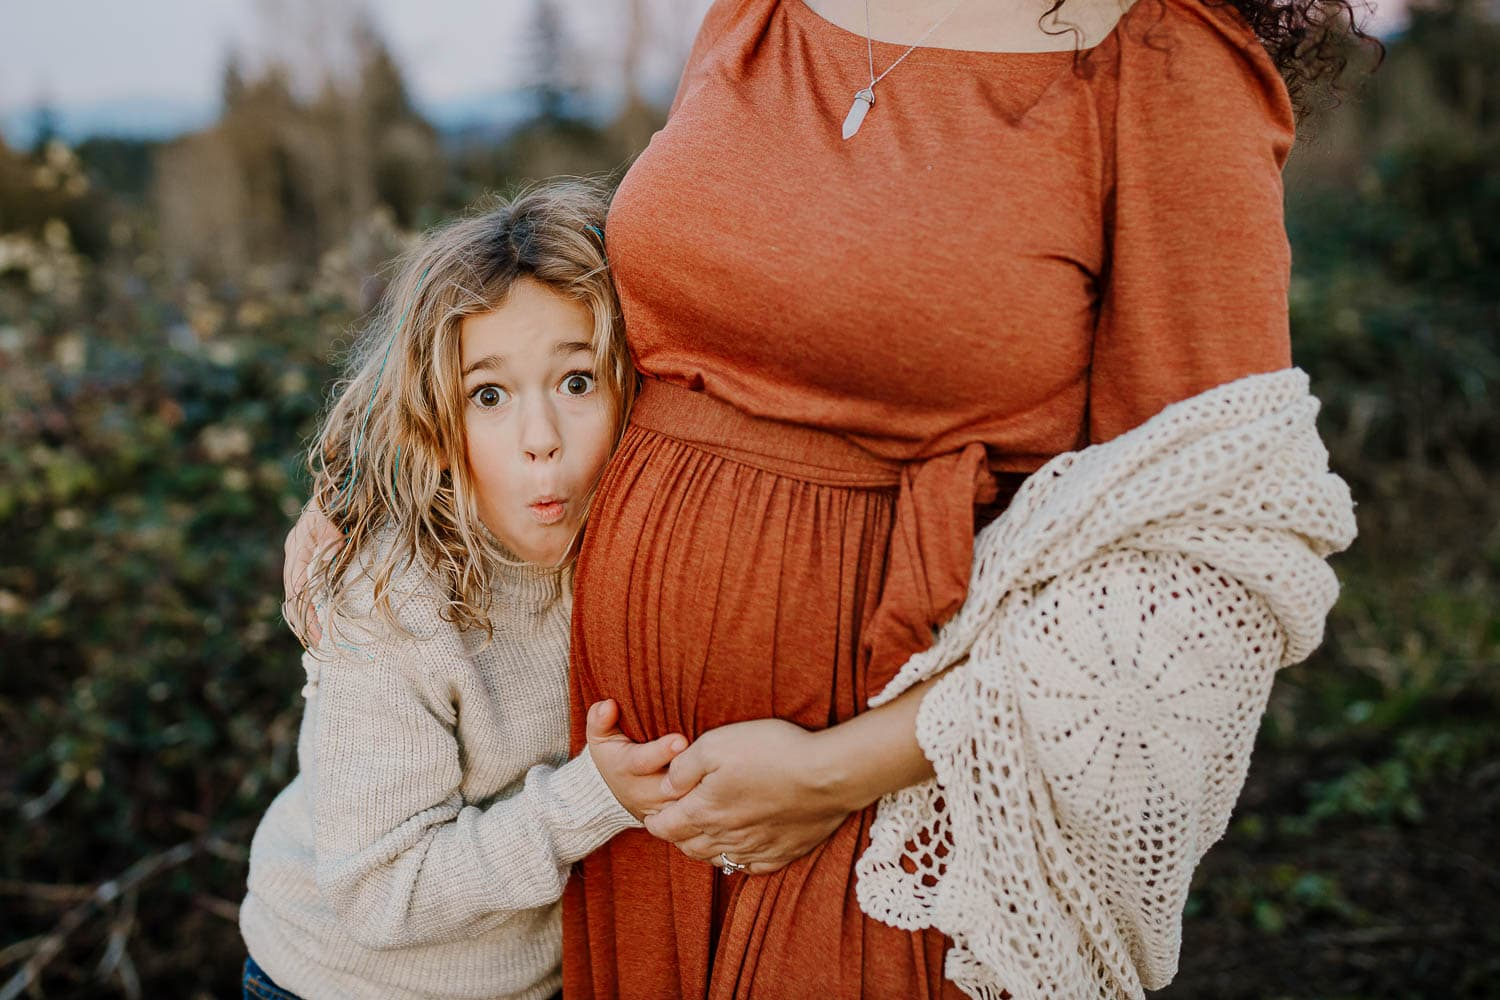 Little boy making a funny face next to his mom's pregnant belly